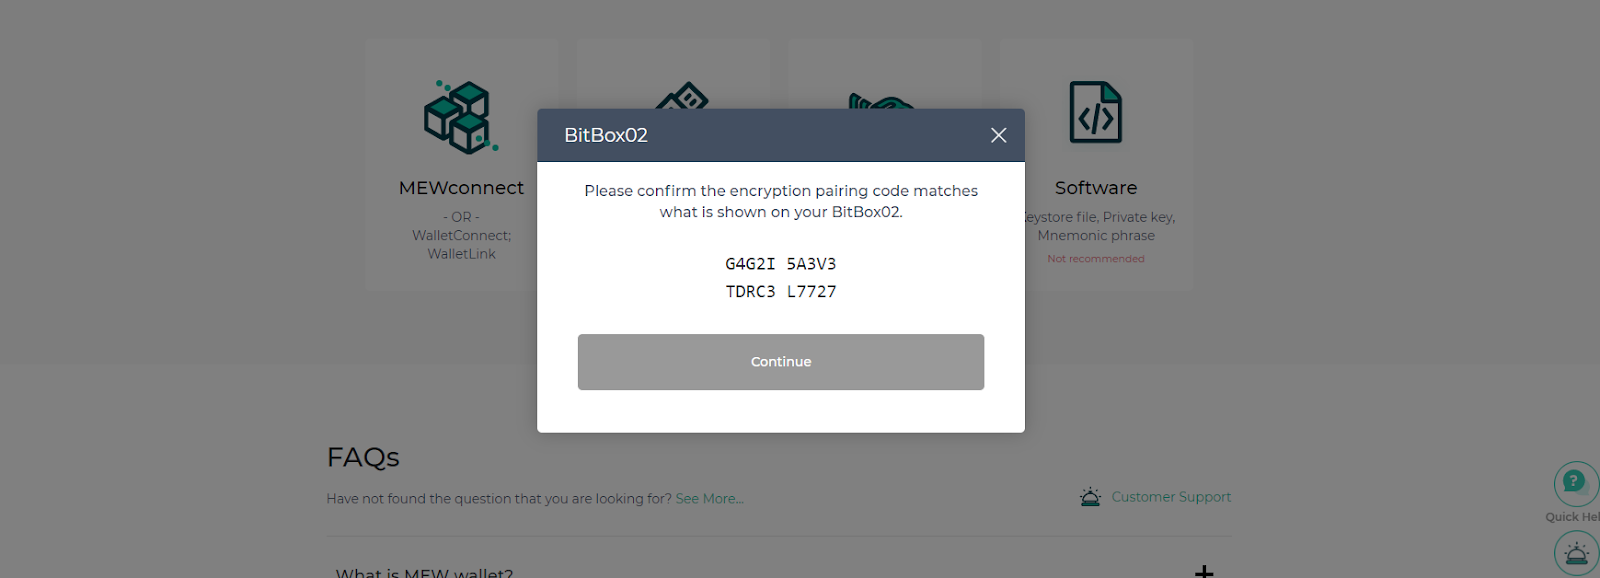 Confirm pairing code matches what is displayed on the BitBox02